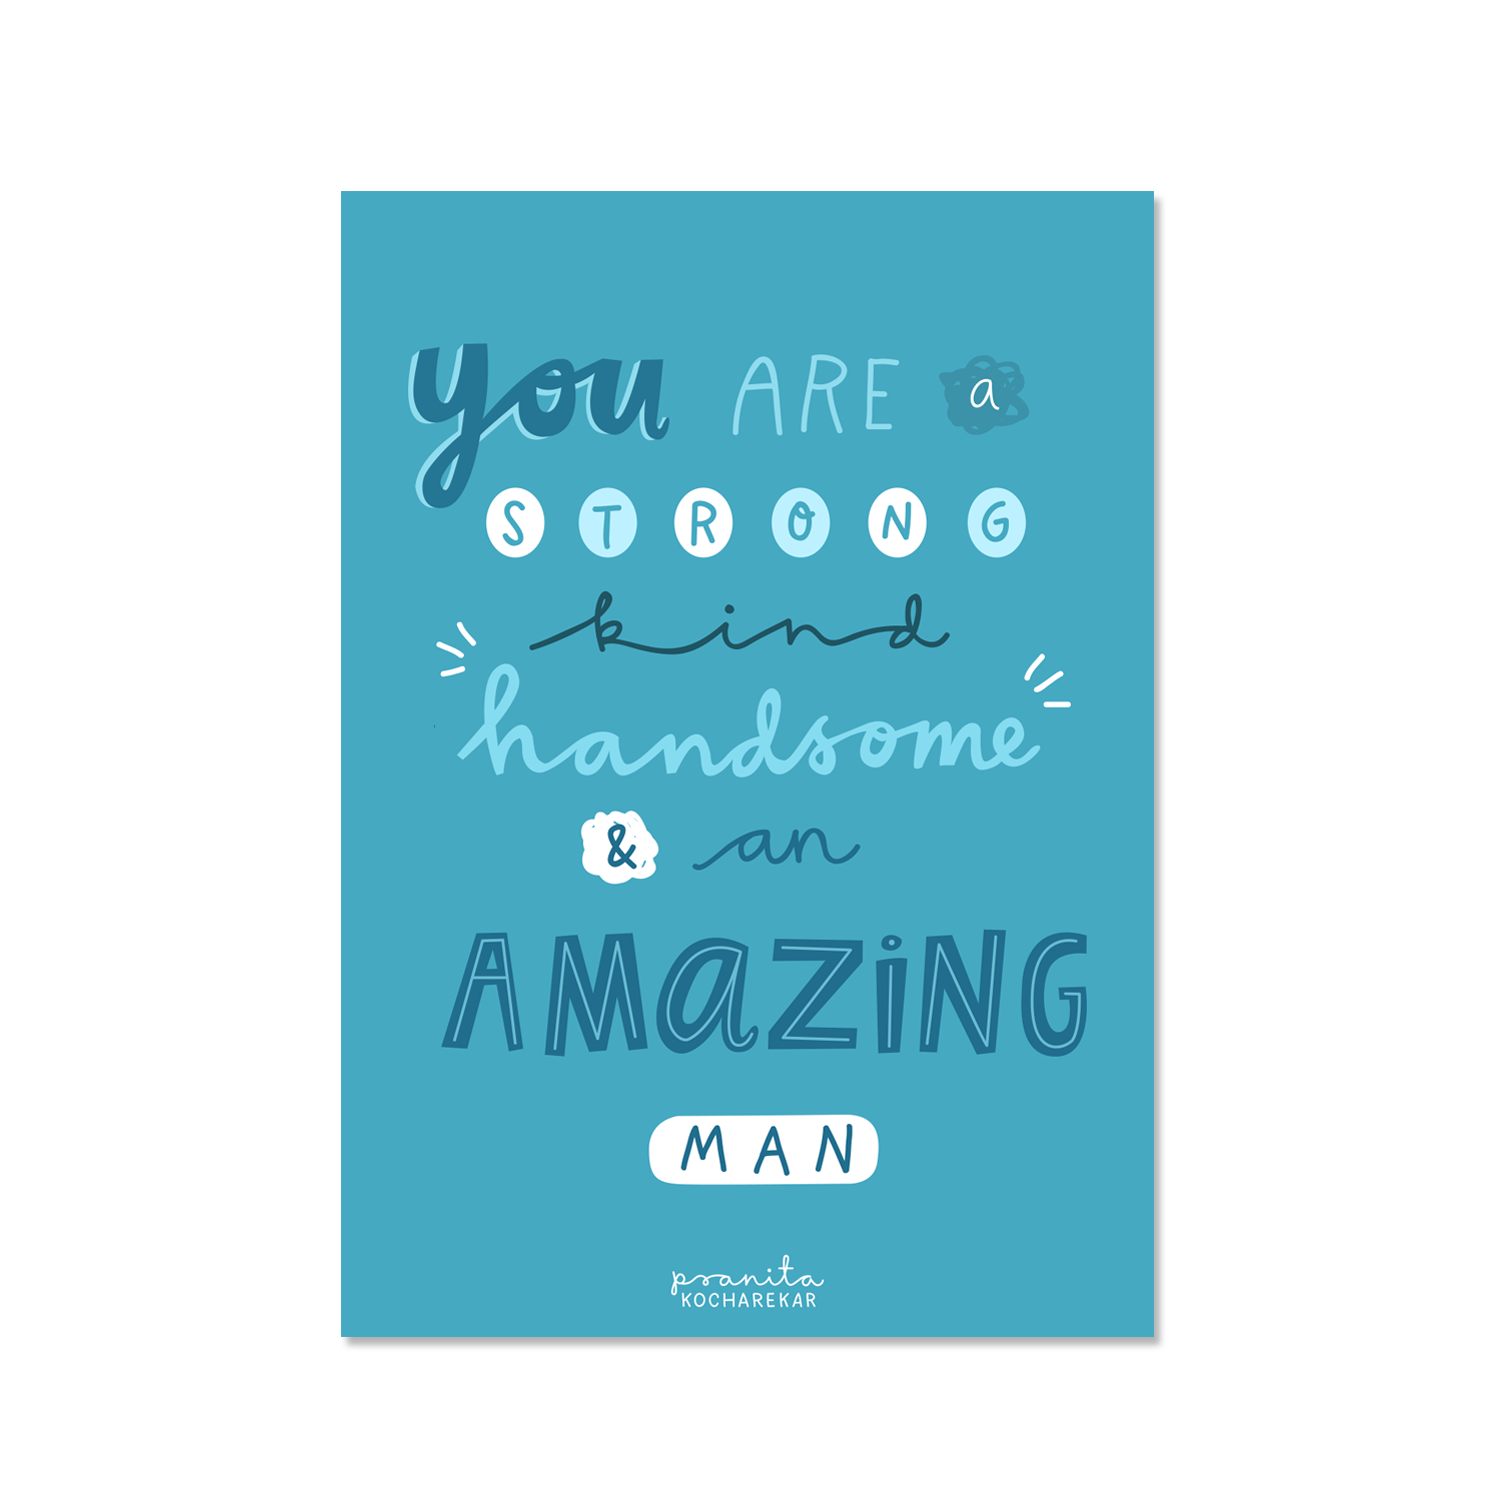 AMAZING MAN POSTCARD